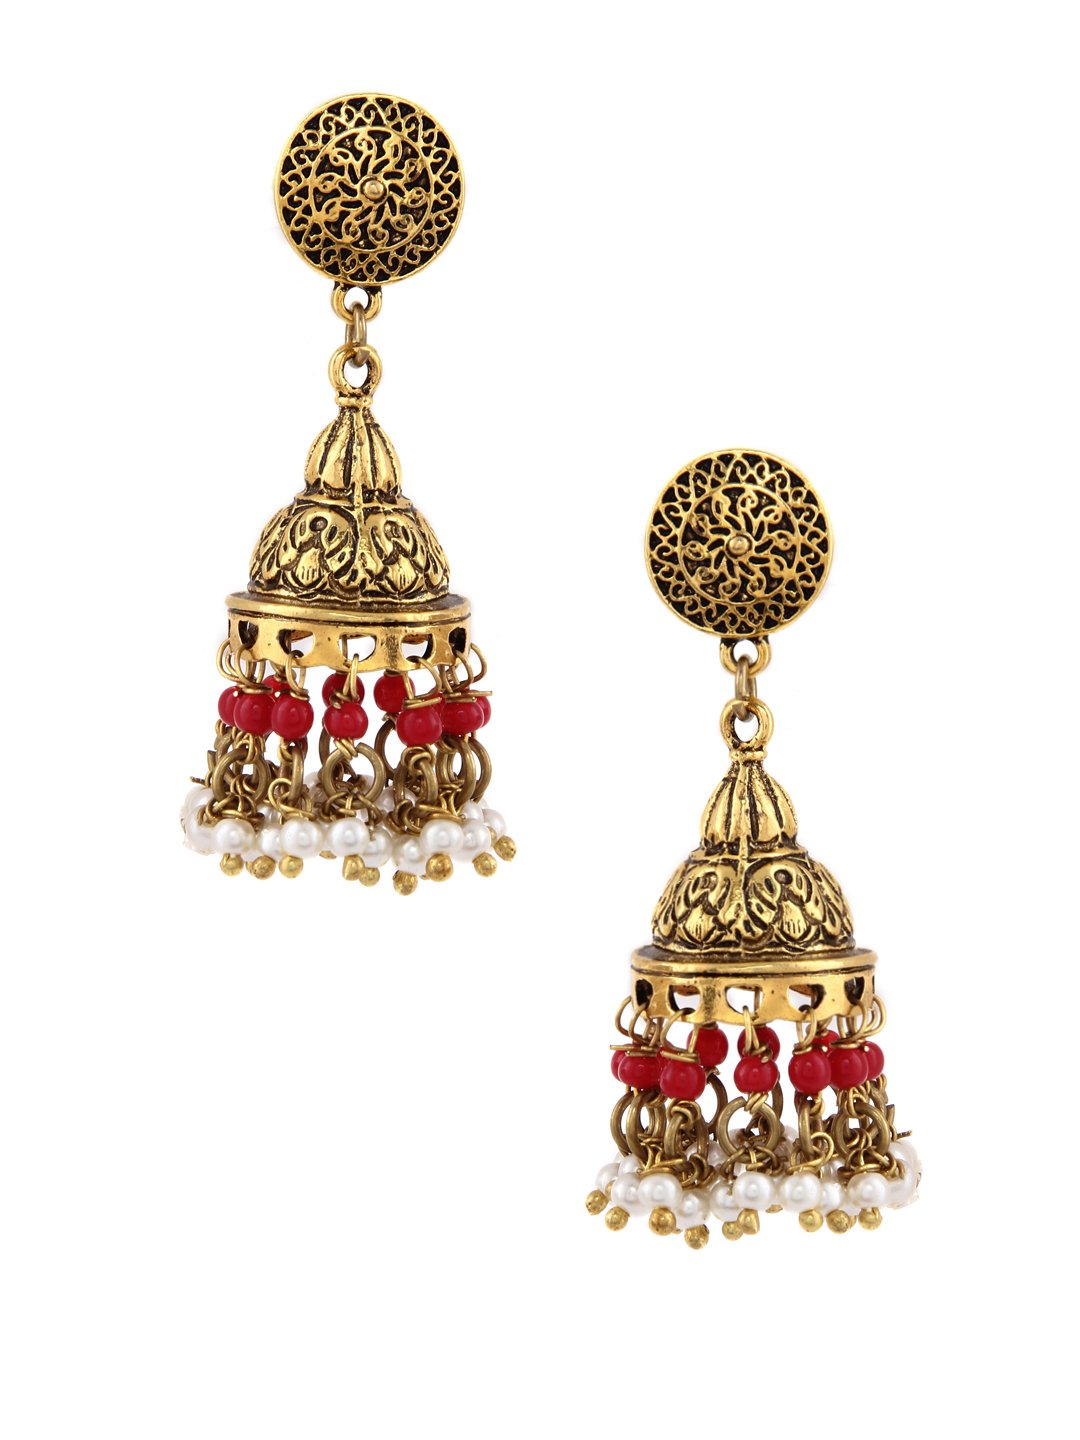 Rubans Oxidized Gold Toned Traditional Indian Jewelry Wedding Stone and Pearls Temple Jhumka Earrings for Women